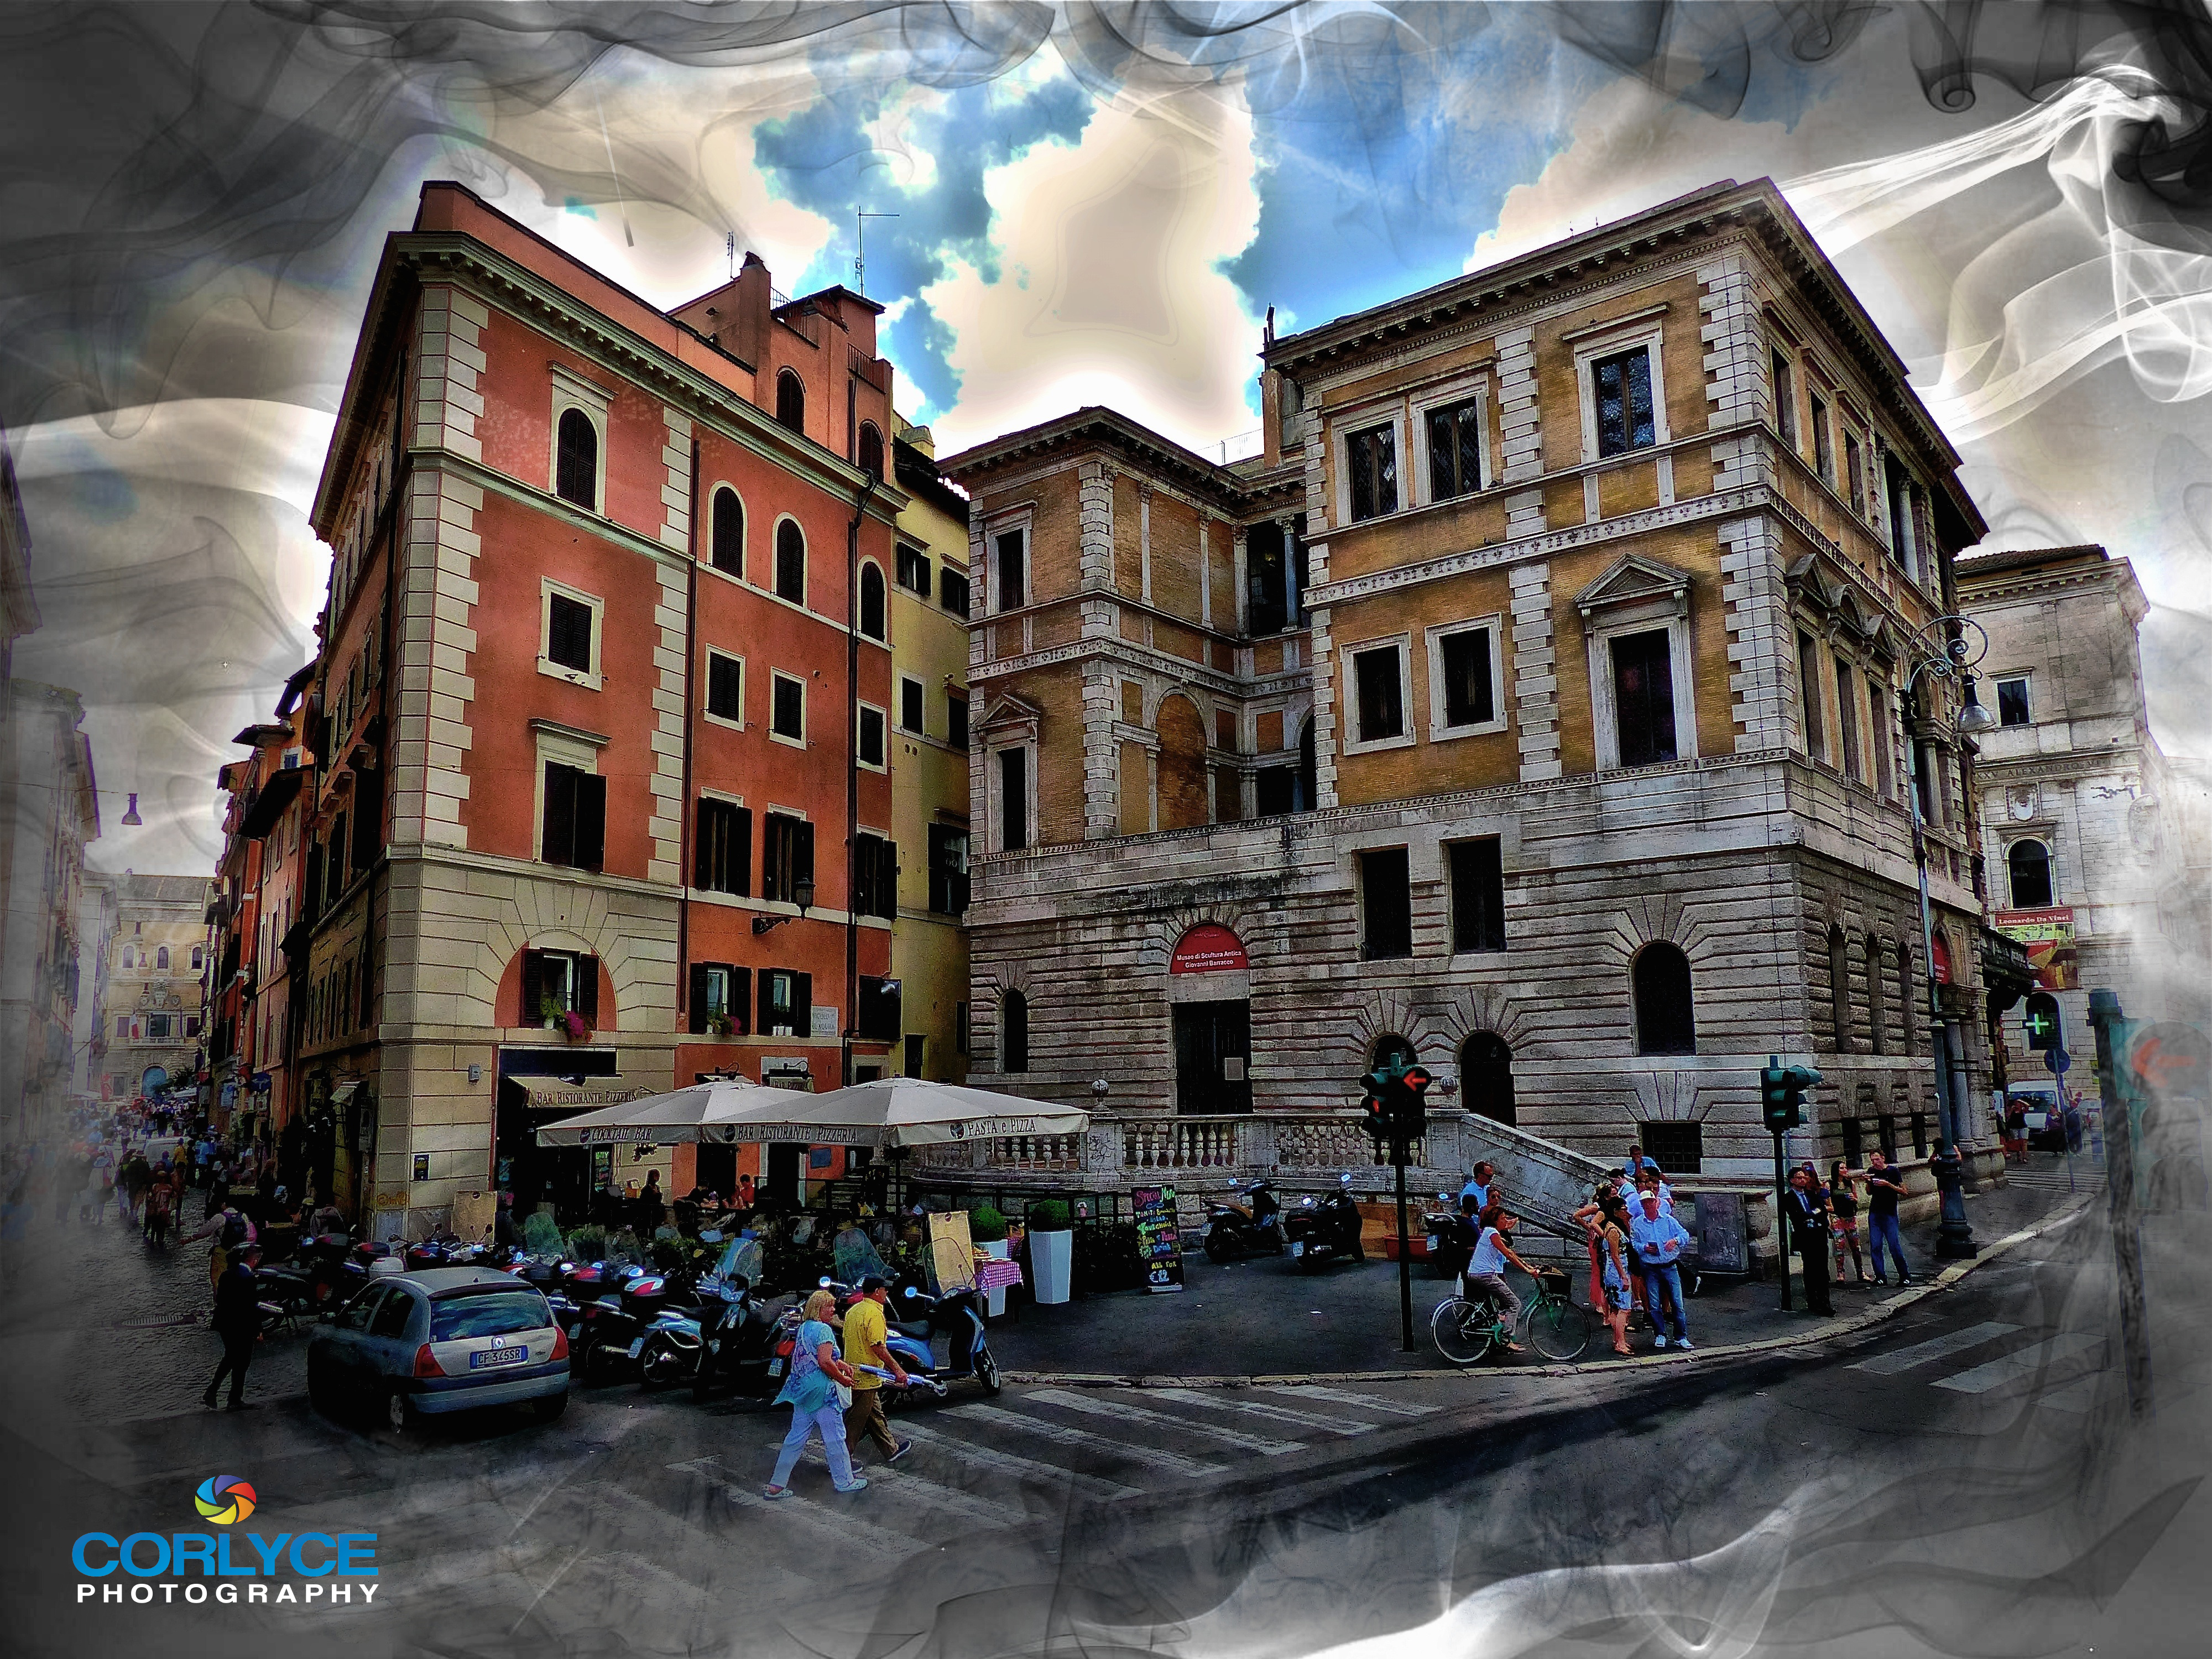 Rome, Italy. For Sale on Fine Art America.